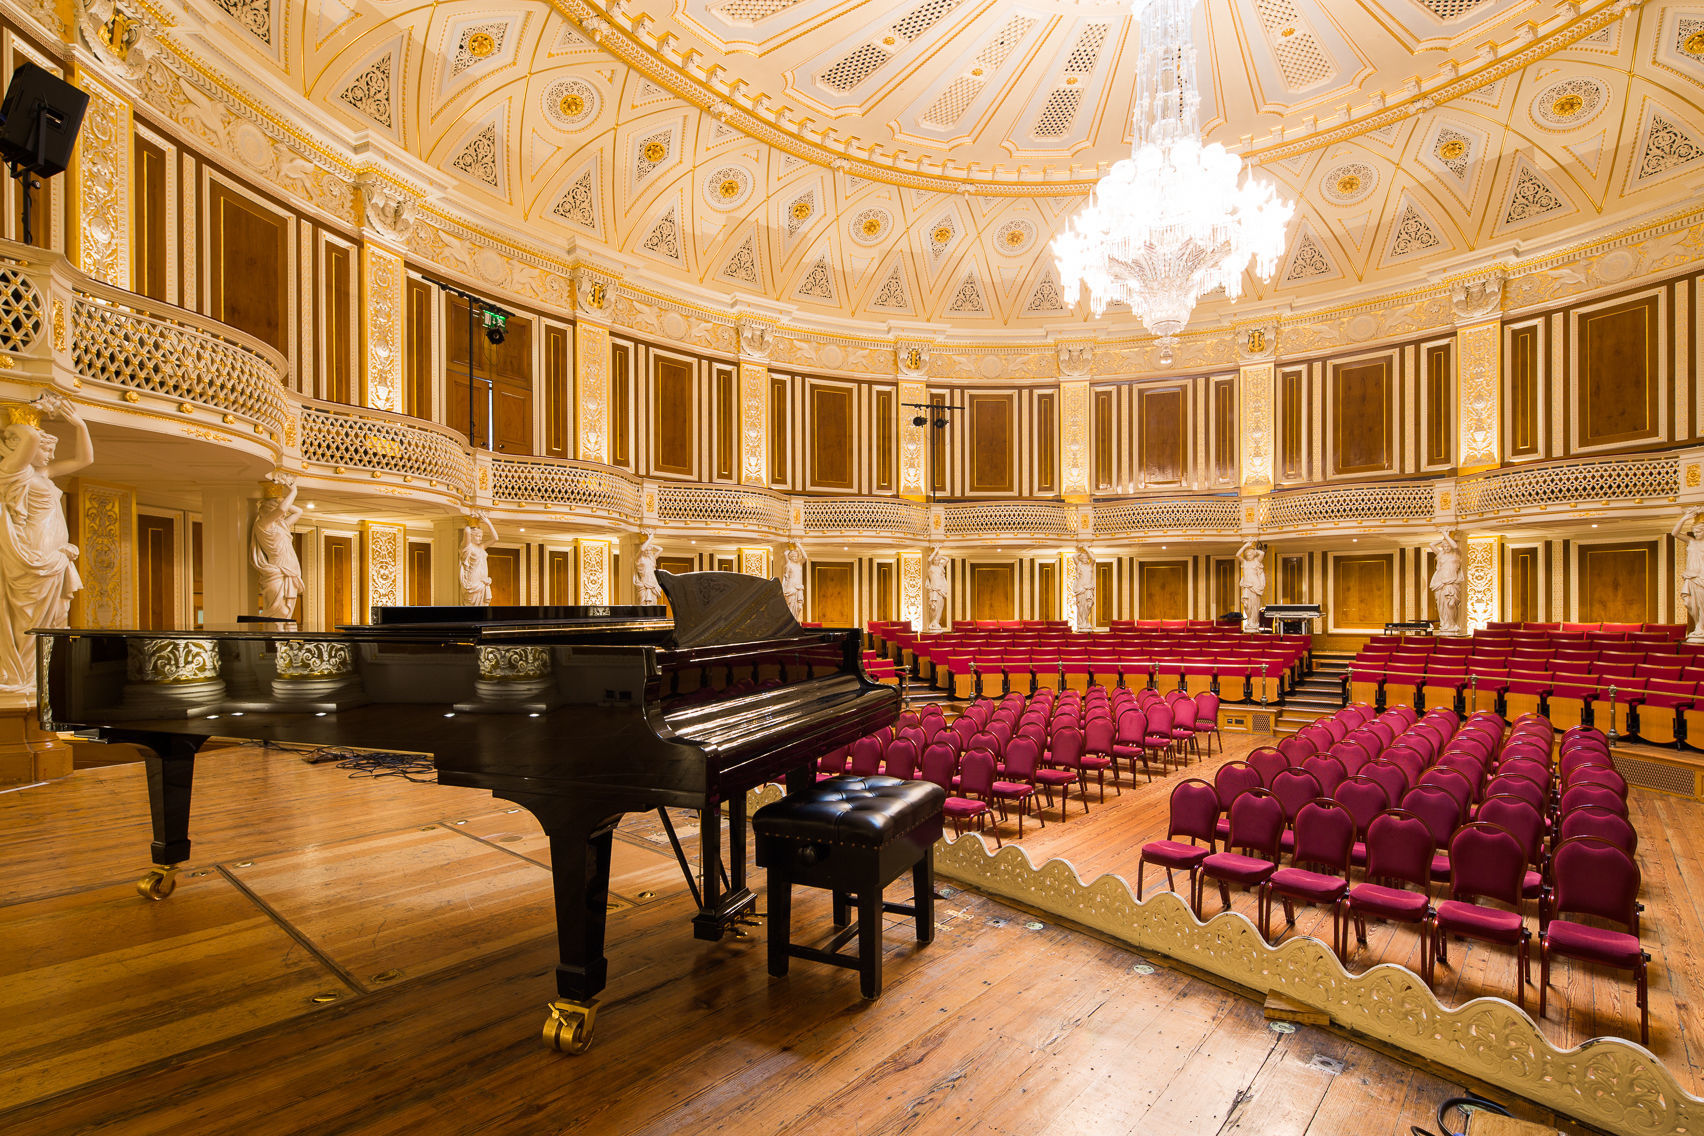 Concert Room, St George's Hall